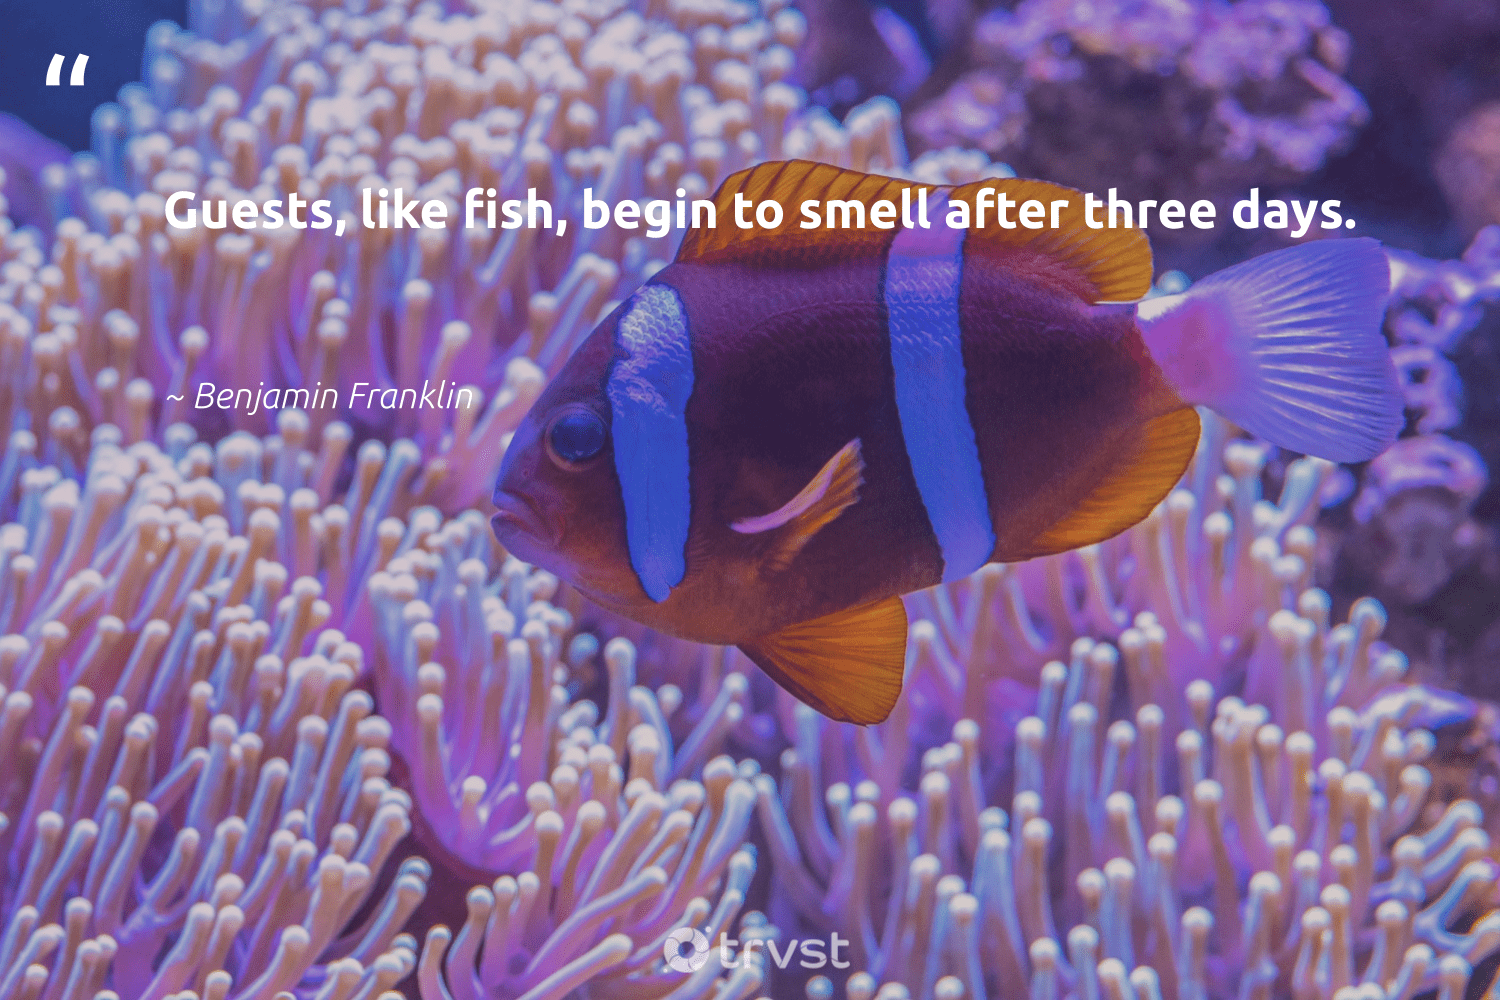 """""""Guests, like fish, begin to smell after three days.""""  - Benjamin Franklin #trvst #quotes #fish #sustainablefishing #changetheworld #perfectnature #socialimpact #amazingworld #planetearthfirst #sealife #collectiveaction #sustainability"""